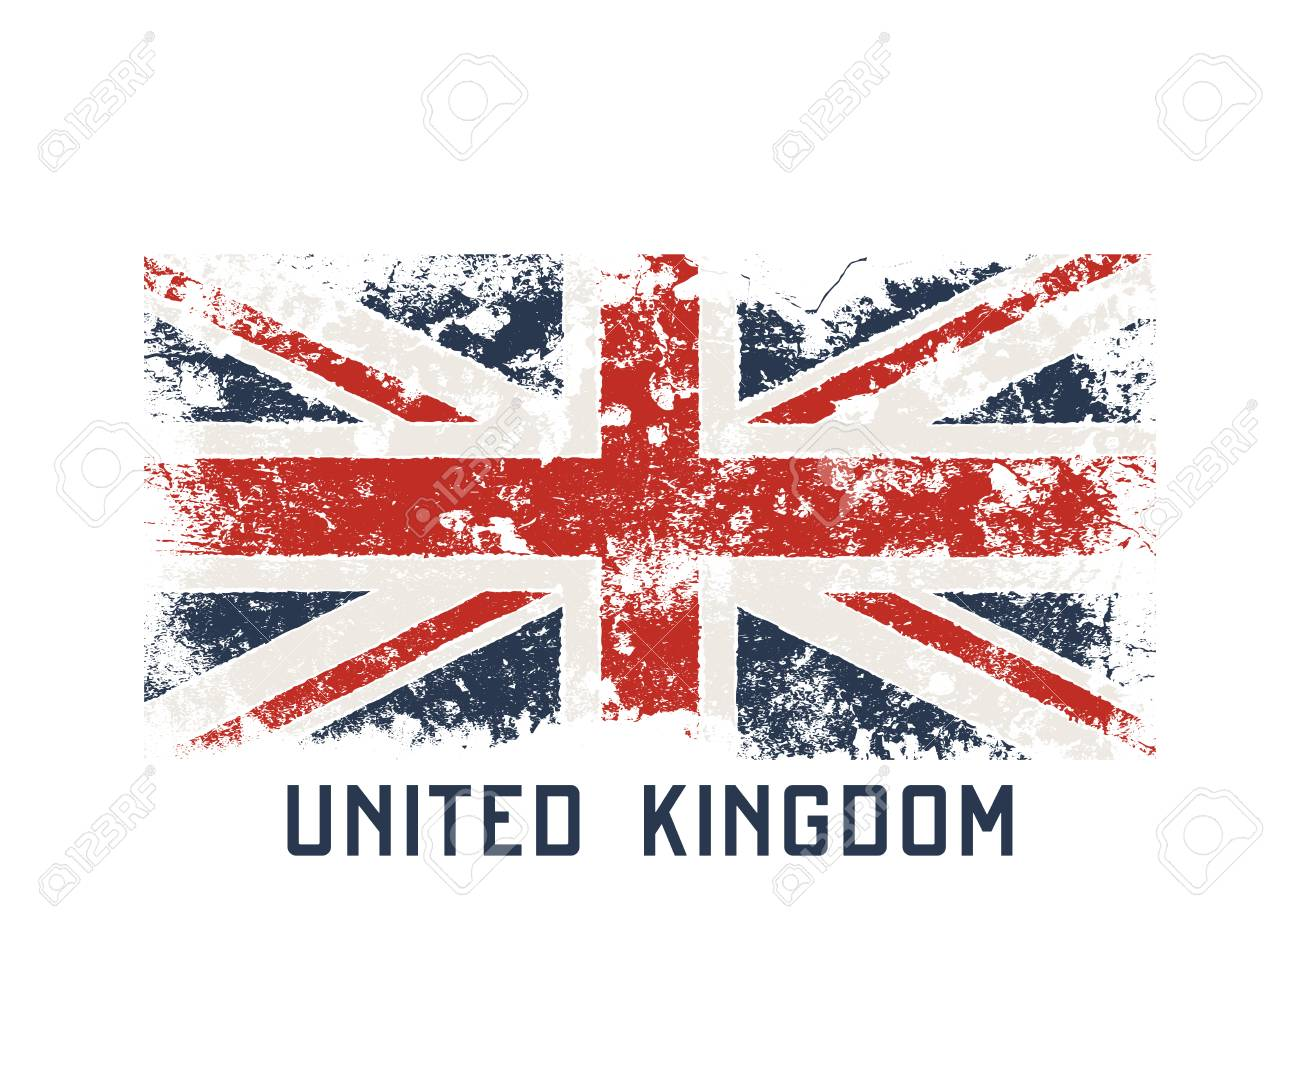 United Kingdoml t-shirt and apparel design with grunge effect. - 90027191